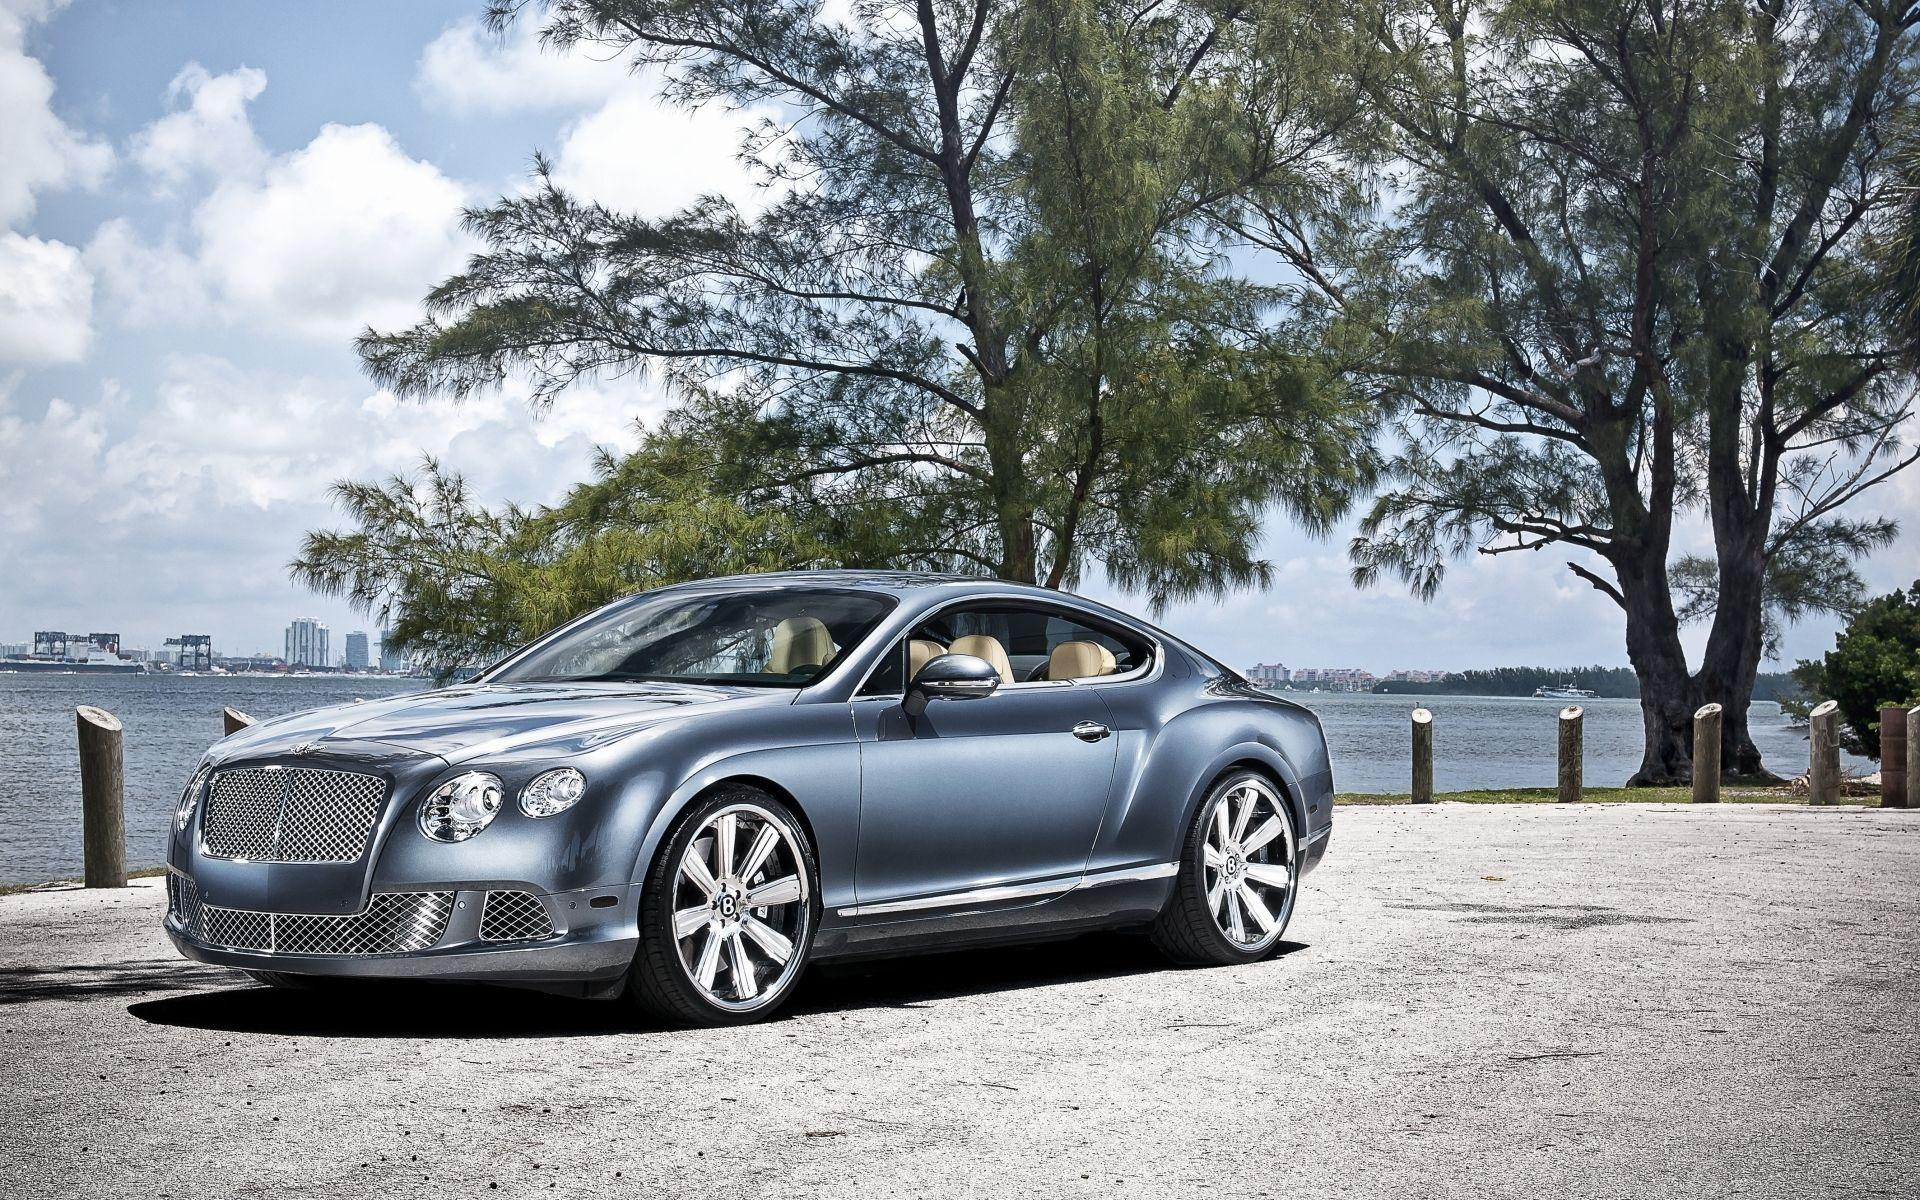 Fantastic Bentley Continental Wallpaper 44041 1920x1200 px ...